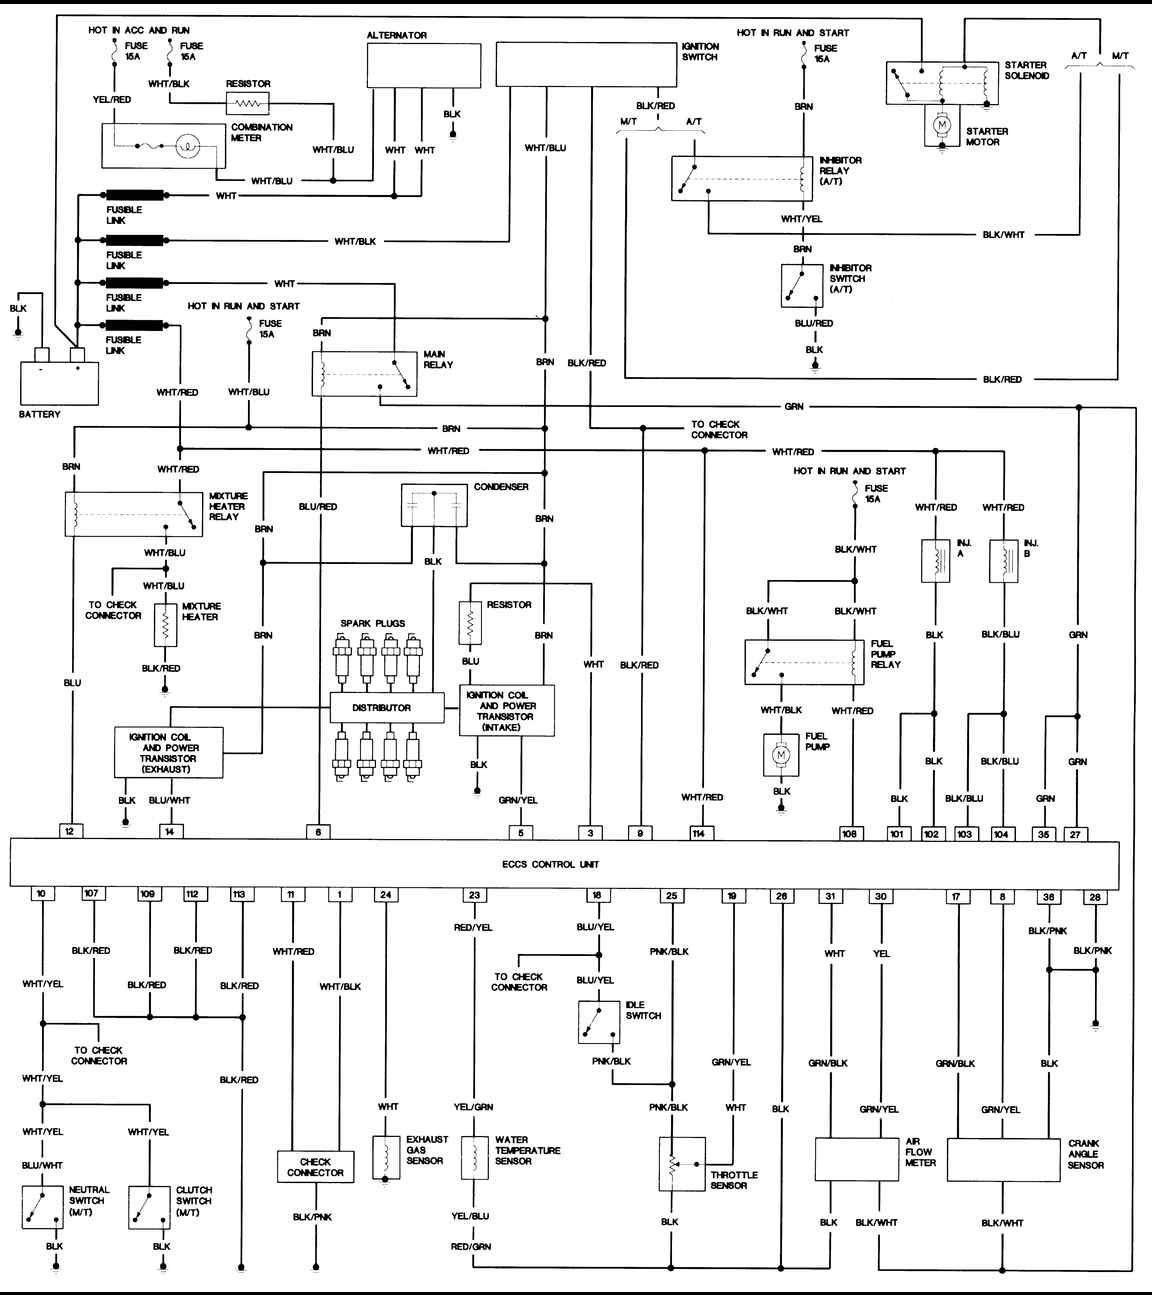 1996 nissan pickup wiring diagram   wiring diagrams database cable  wiring diagram library